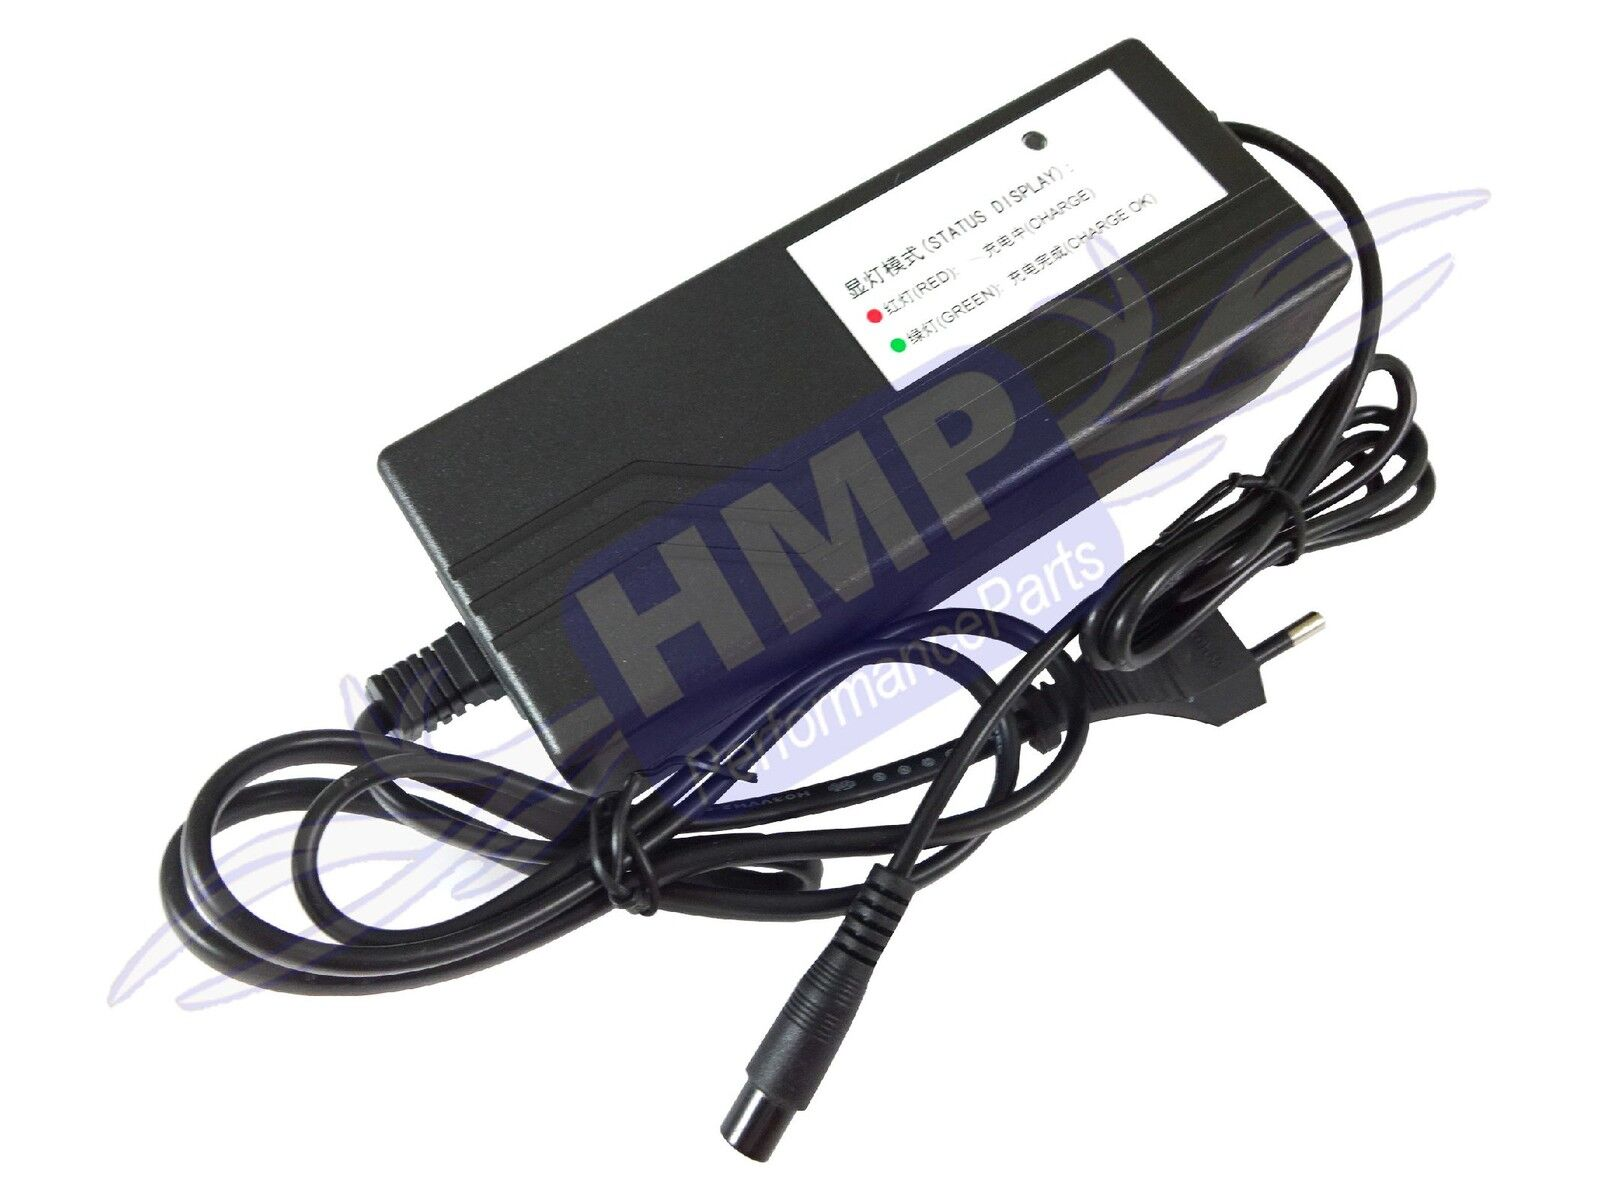 Hmparts E-Scooter Board Bike 3-poliges Charger 36V 1,5A - Li-Ion Type 4